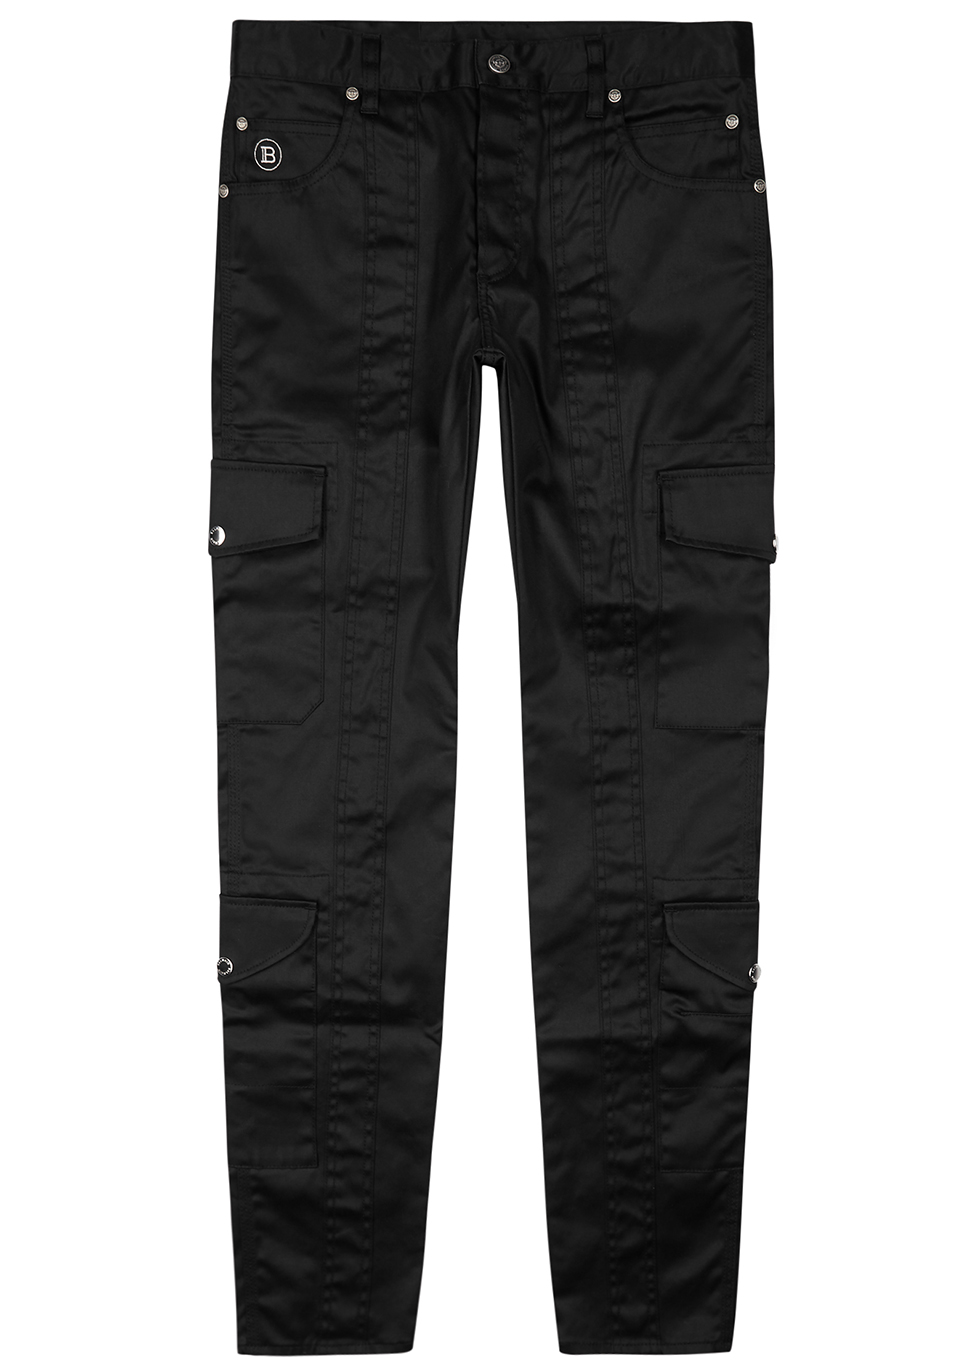 Black coated cotton-blend cargo trousers